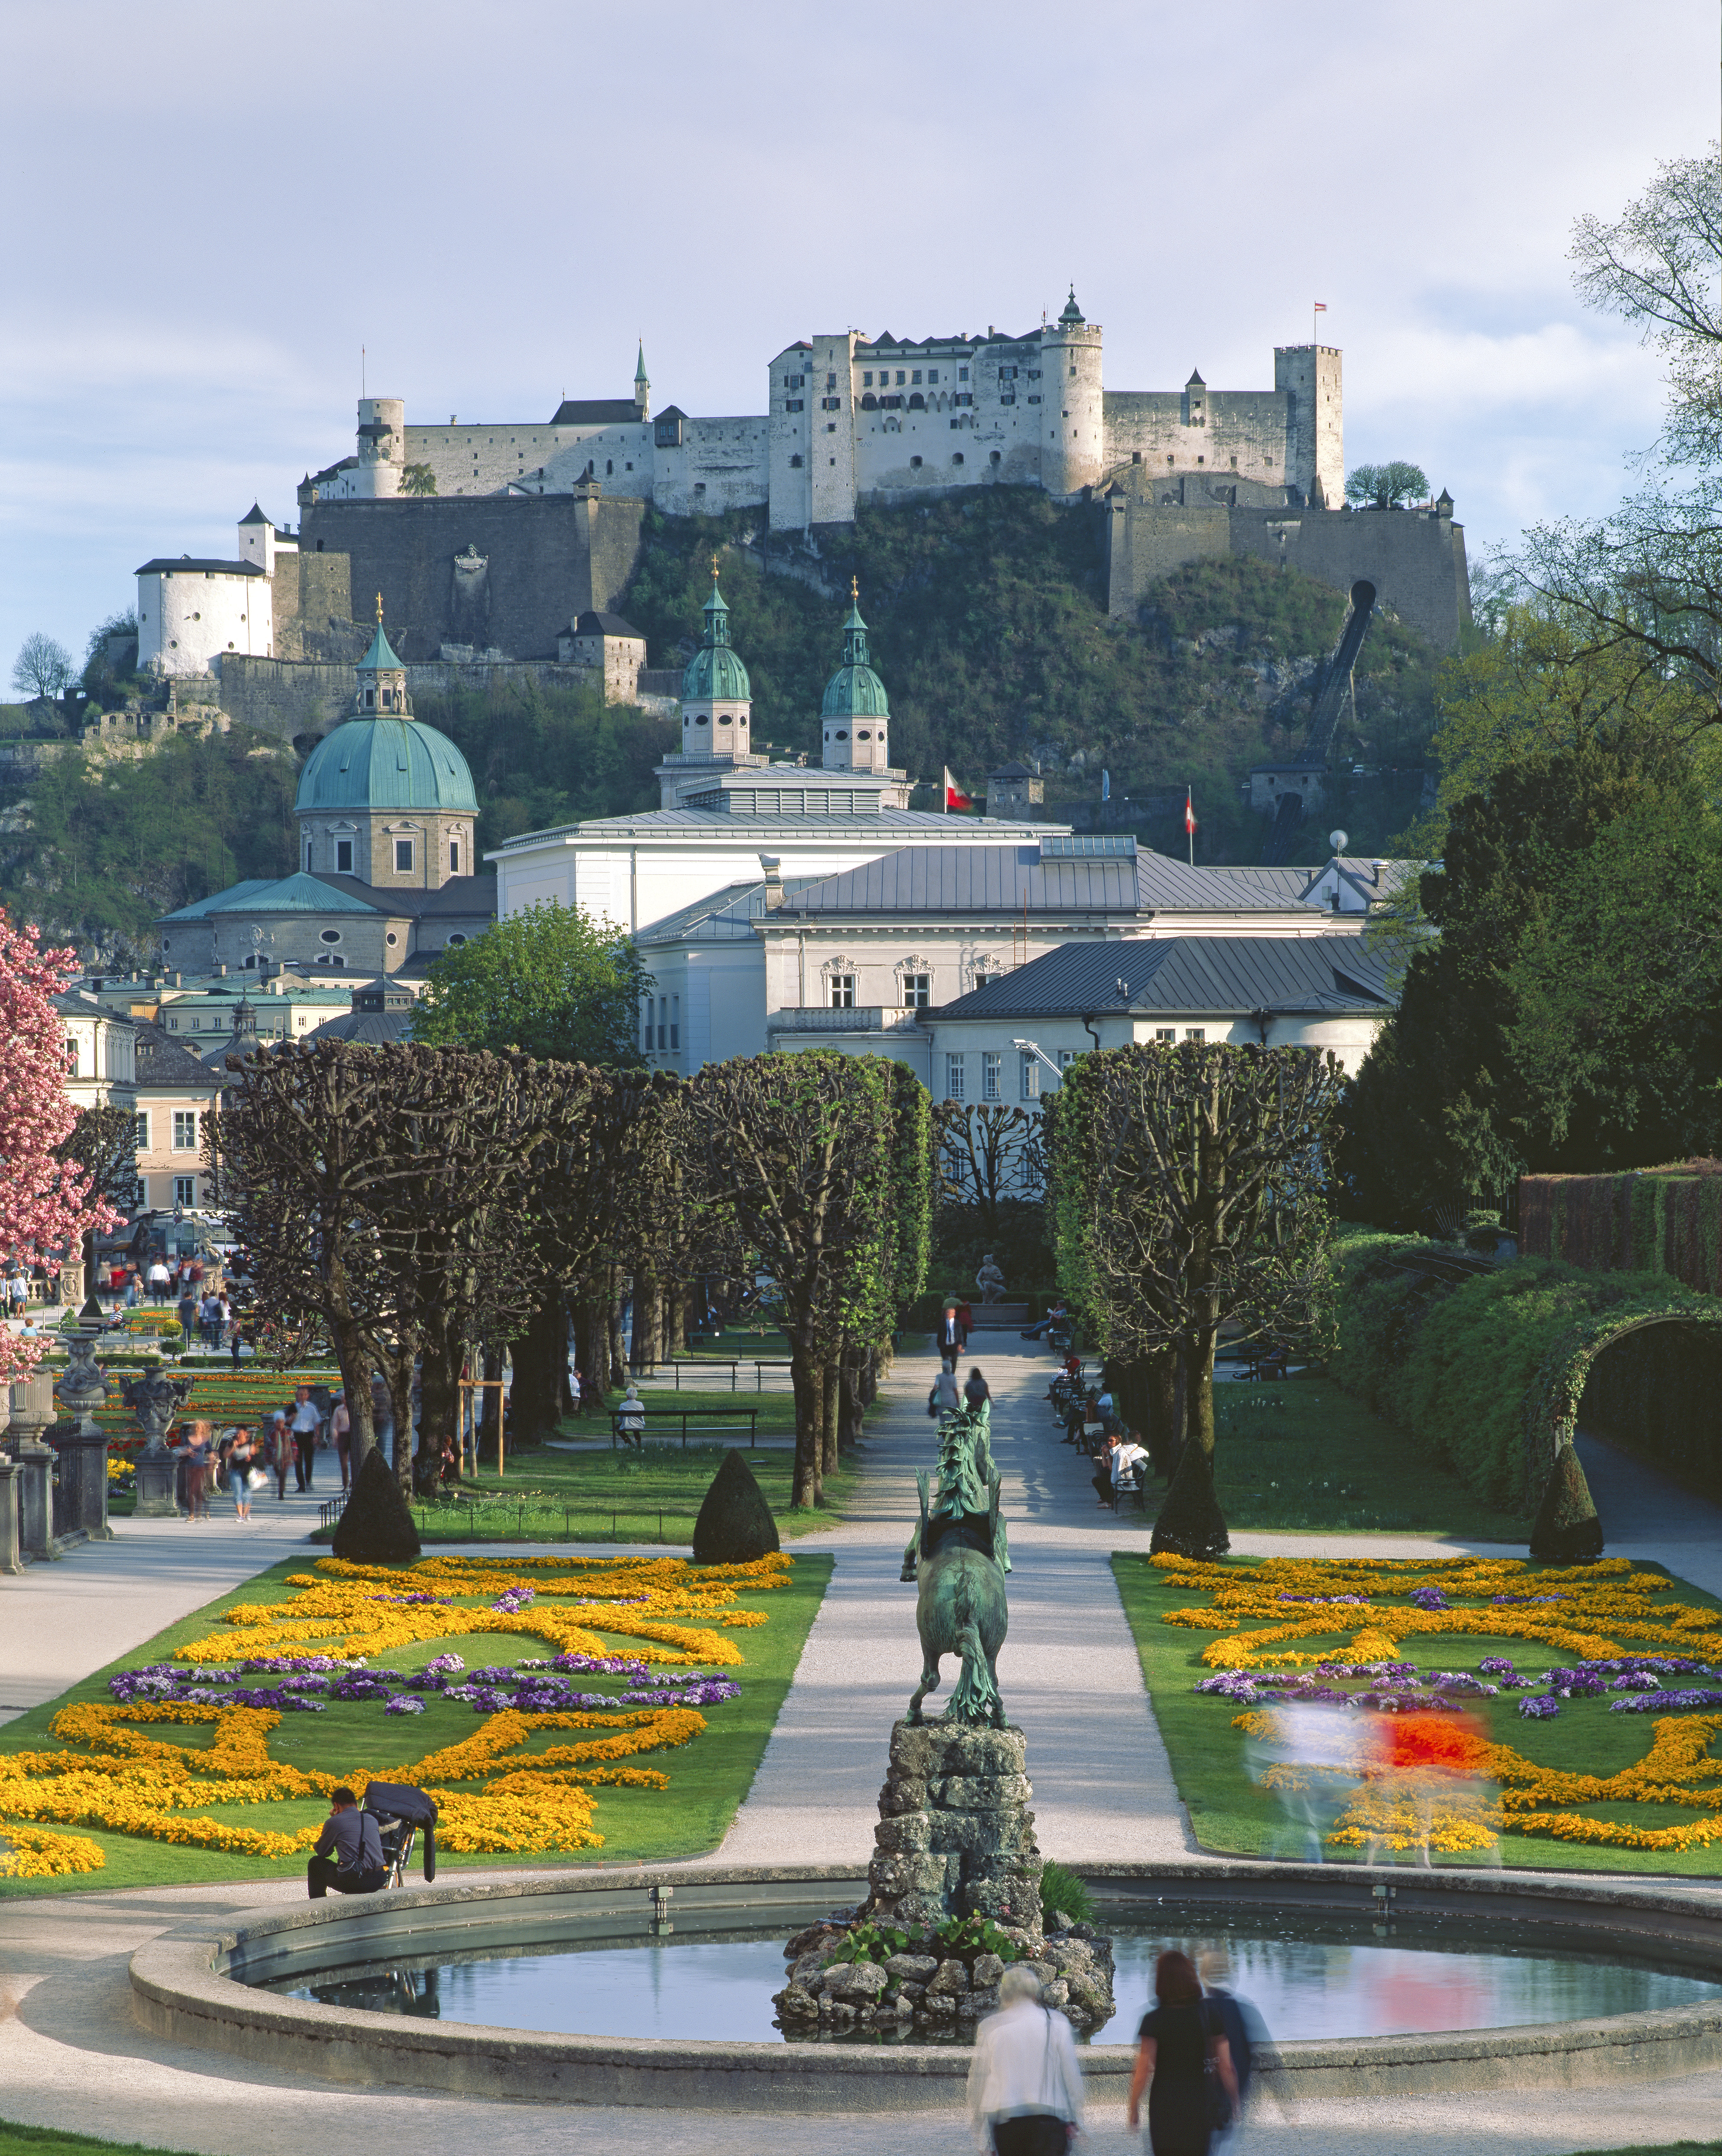 The medieval Hohensalzburg Fortress overlooking Mirabell Palace and Gardens in Salzburg